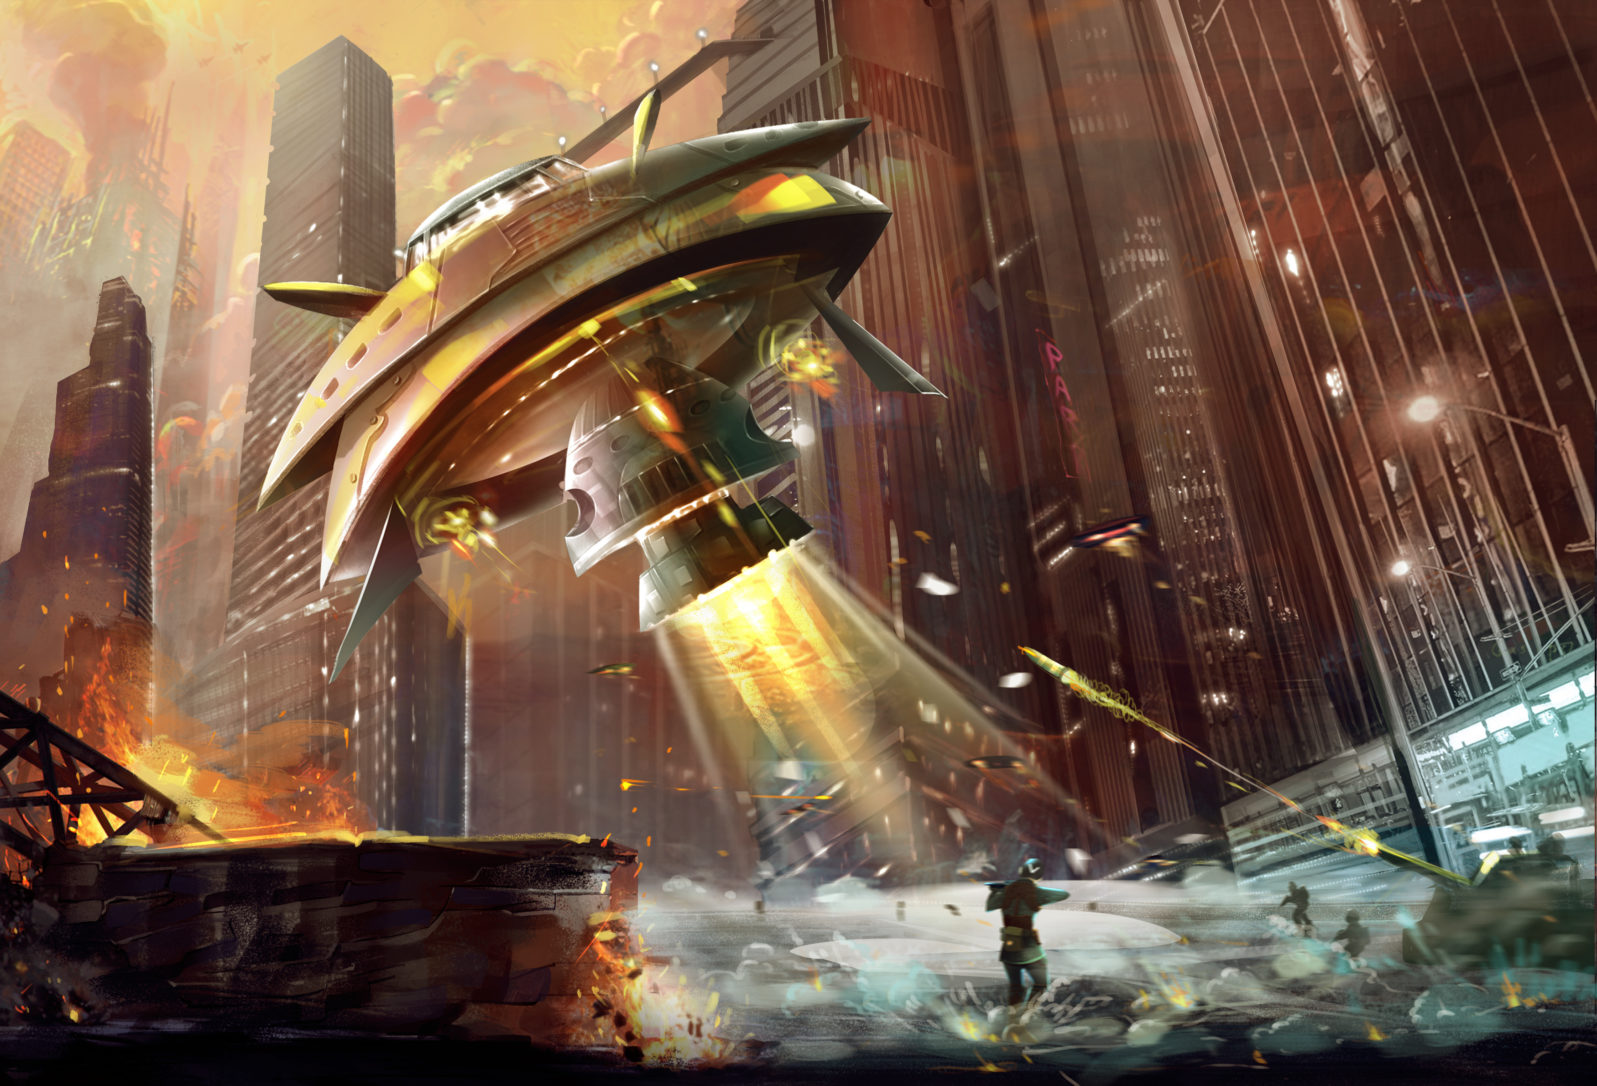 Illustration: The Terrible Alien UFO Destroyer comes. The Combat Begins. Realistic Style. Scene / Wallpaper Design.